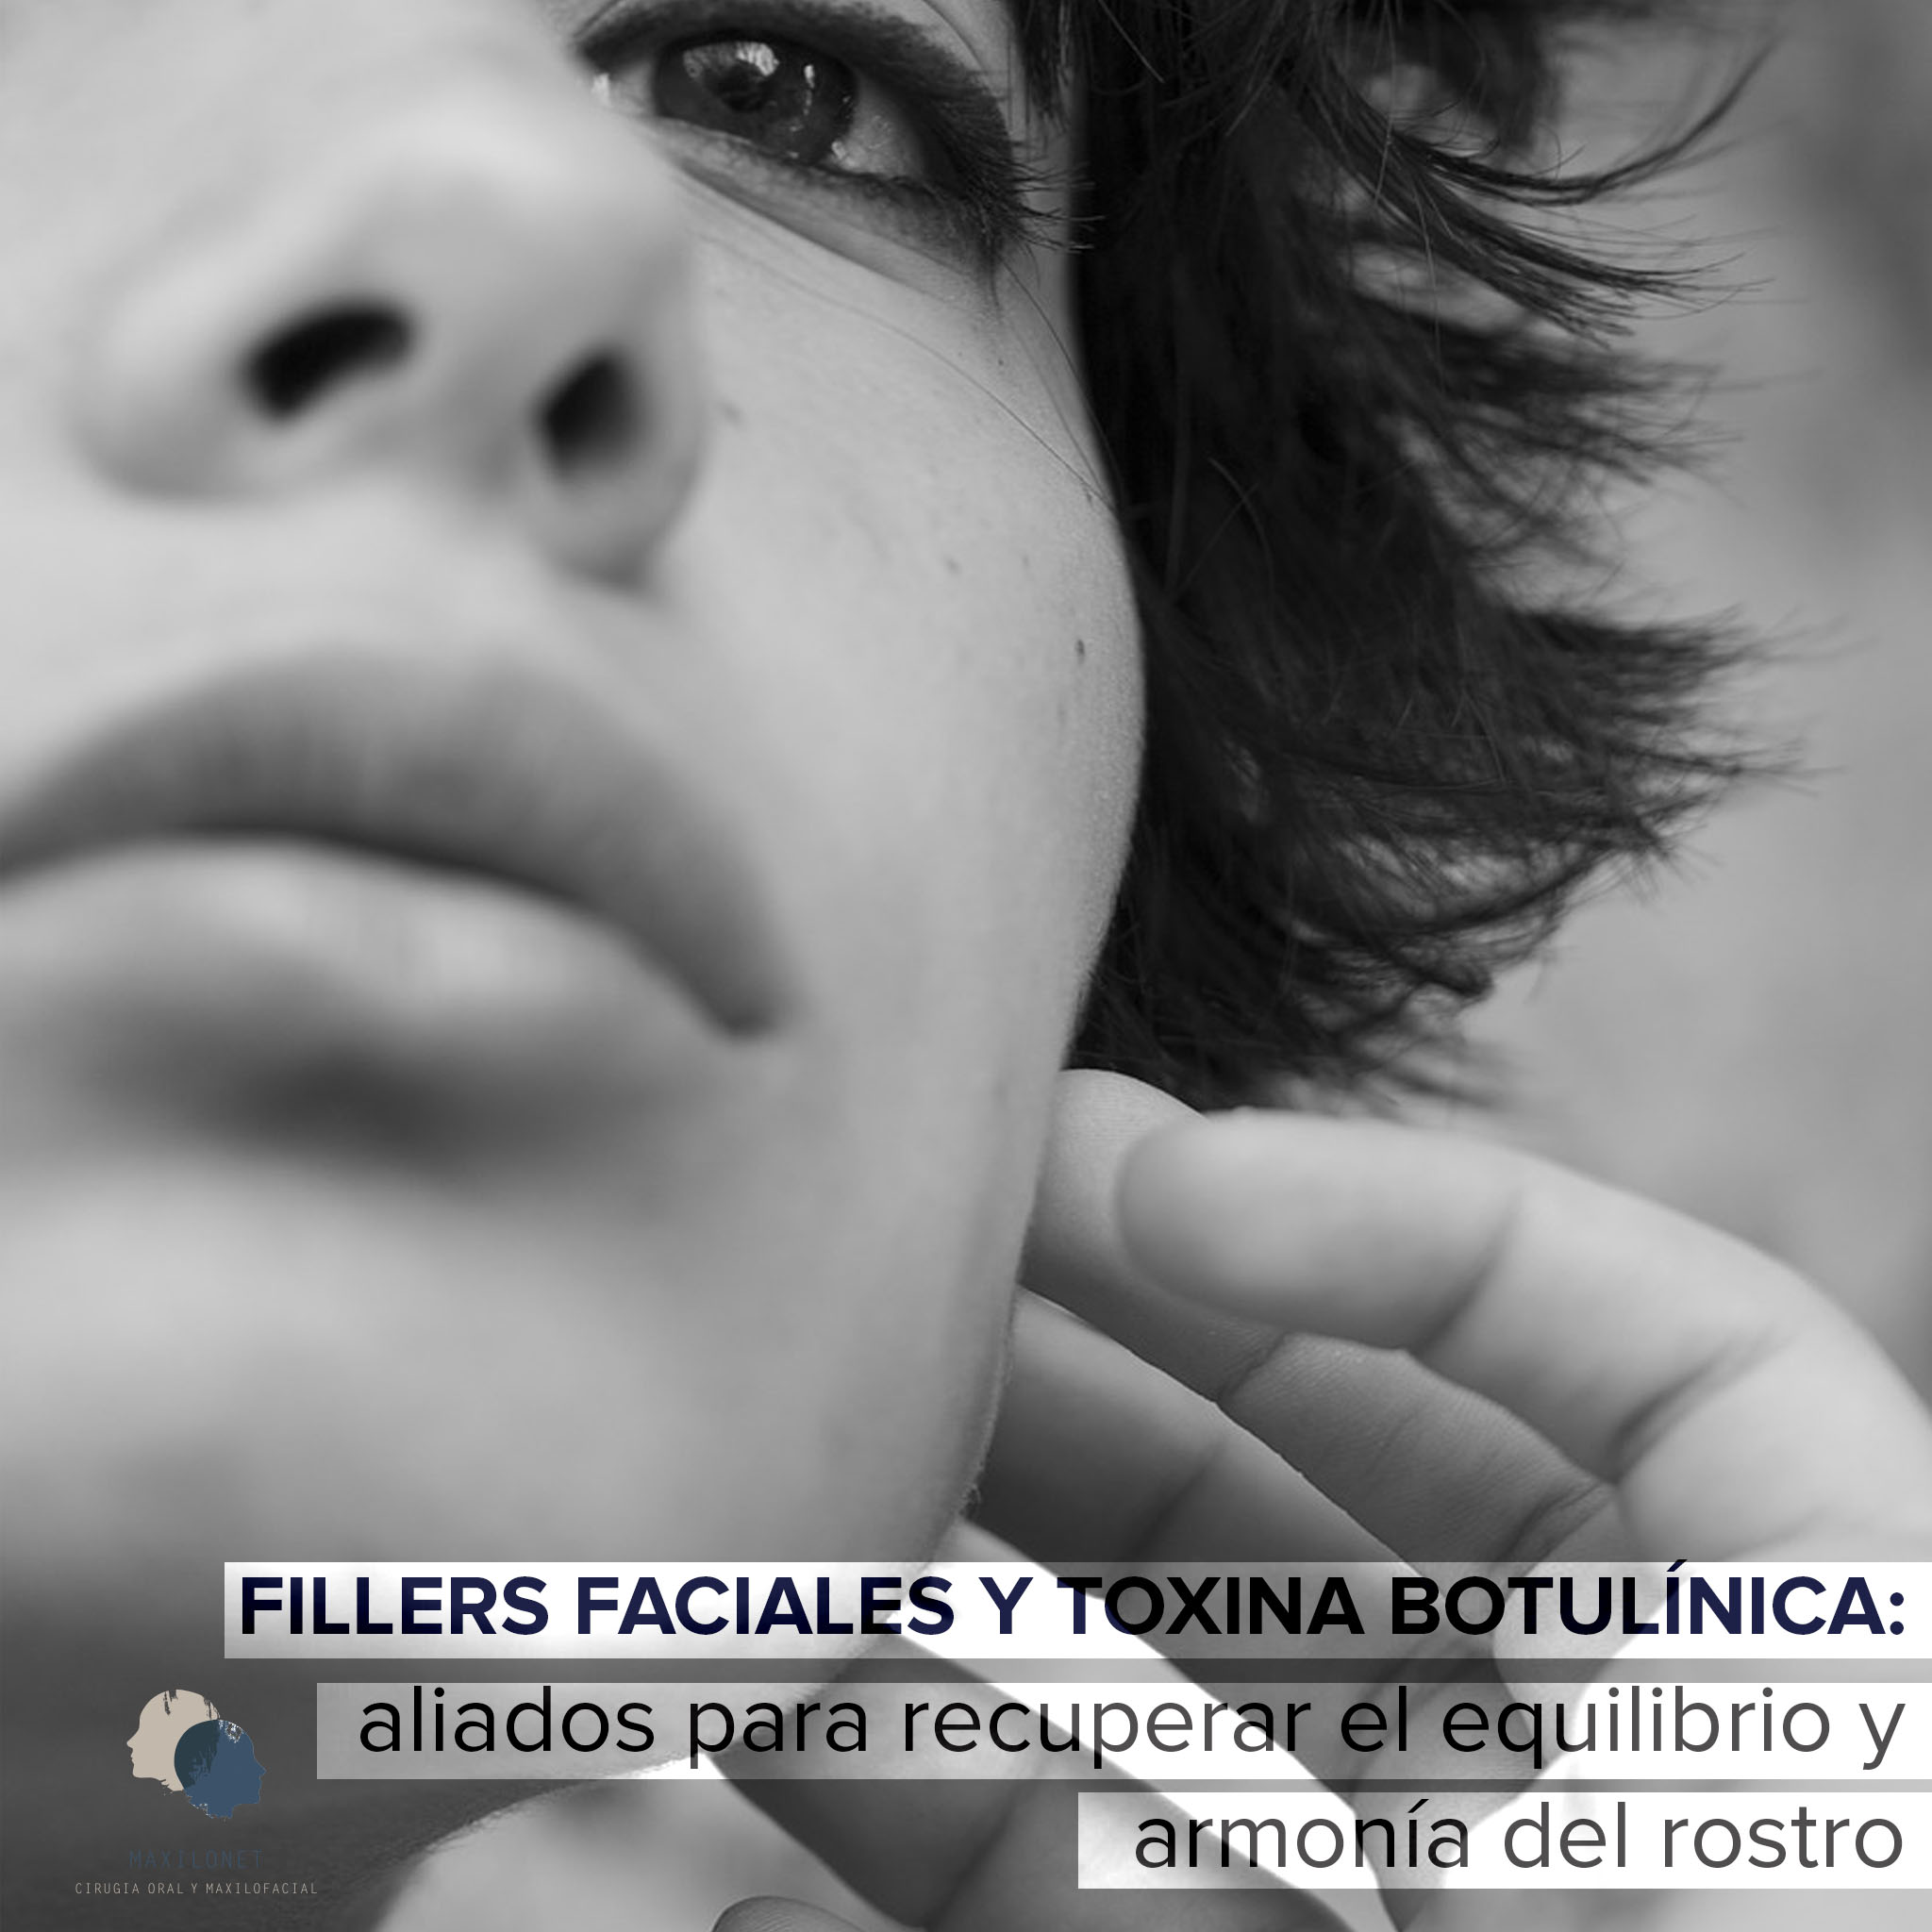 FILLERS Y TOXINA BOTULÍNICA